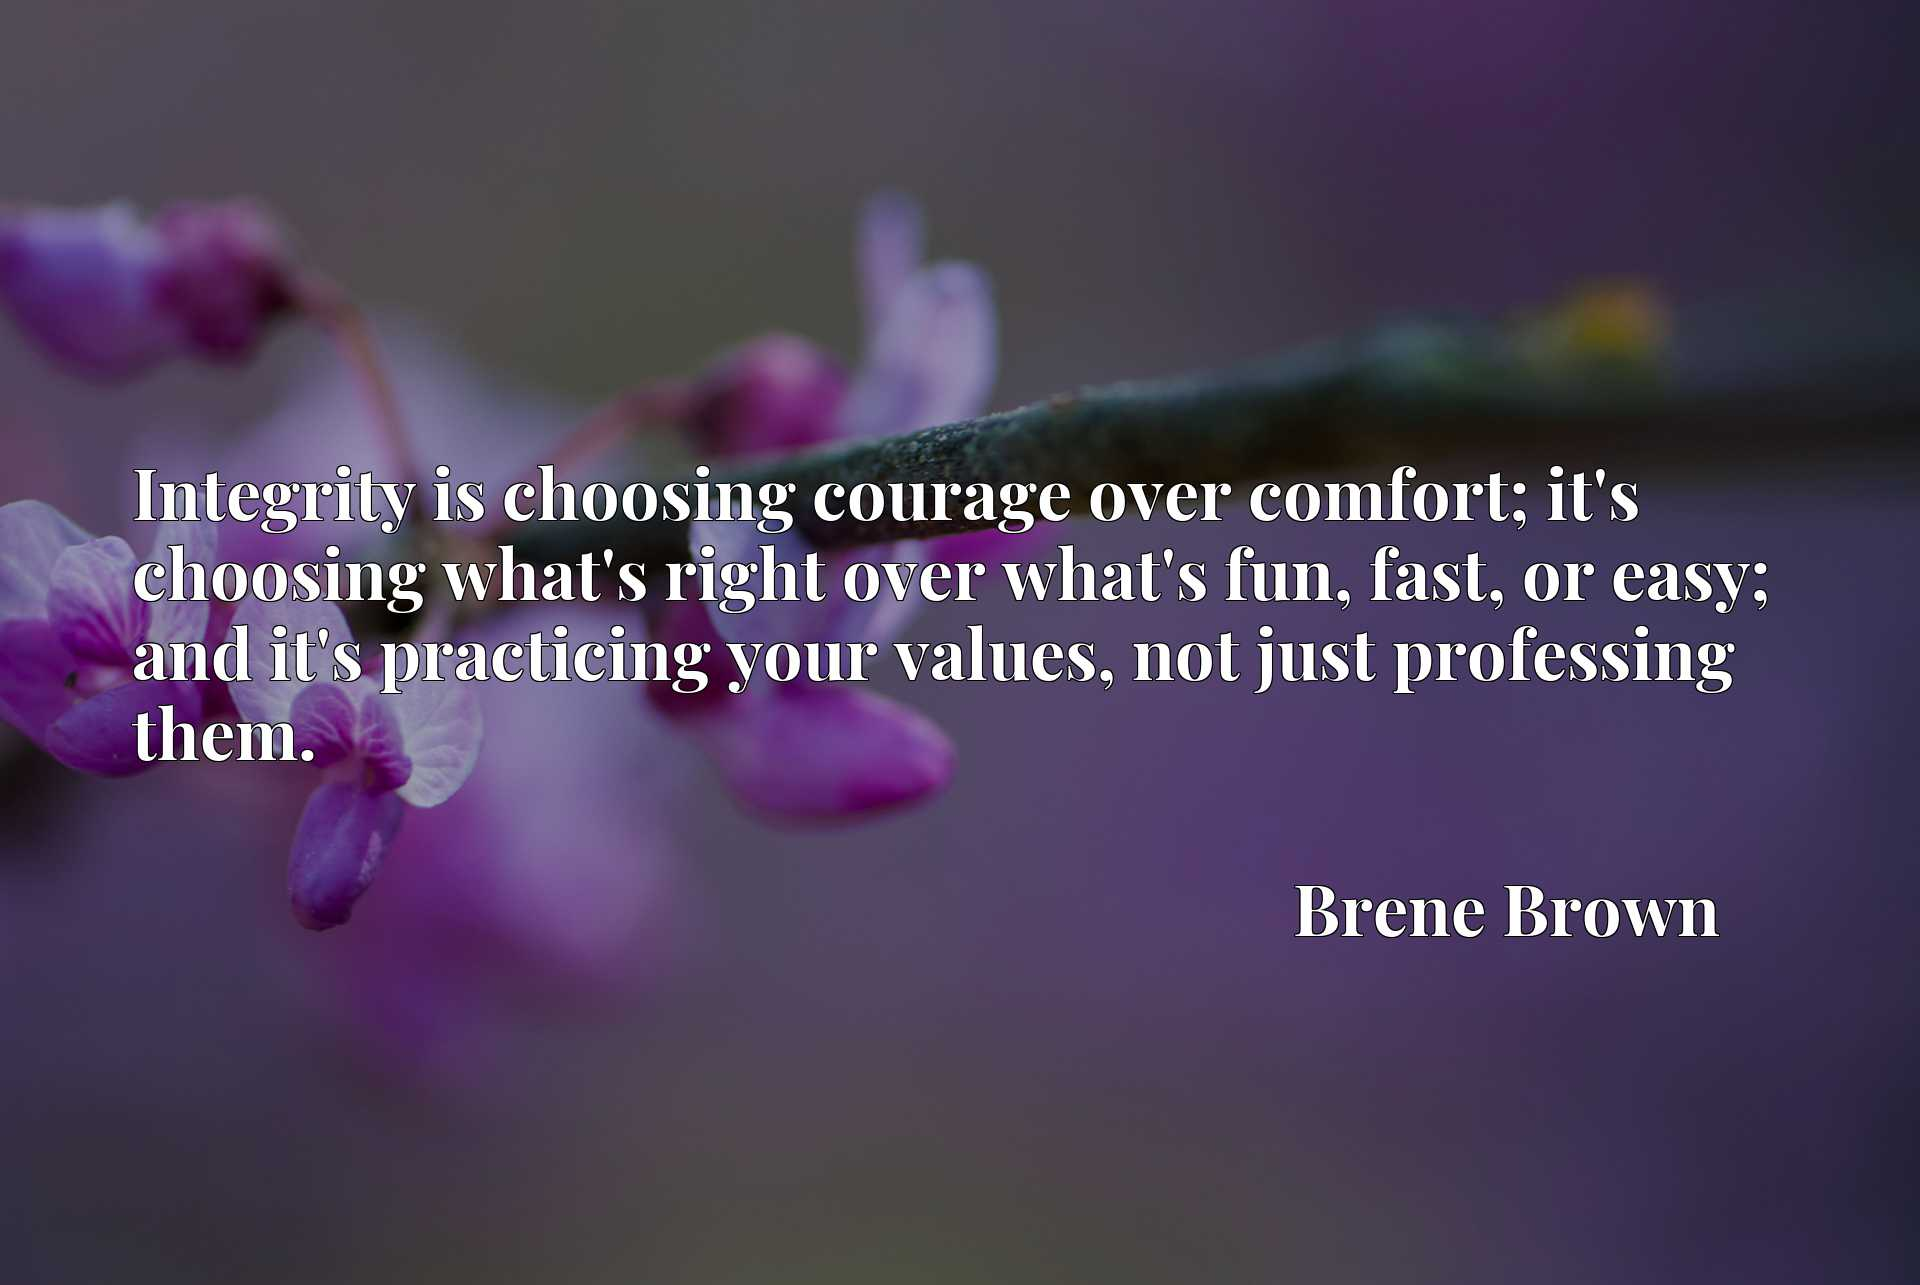 Integrity is choosing courage over comfort; it's choosing what's right over what's fun, fast, or easy; and it's practicing your values, not just professing them.